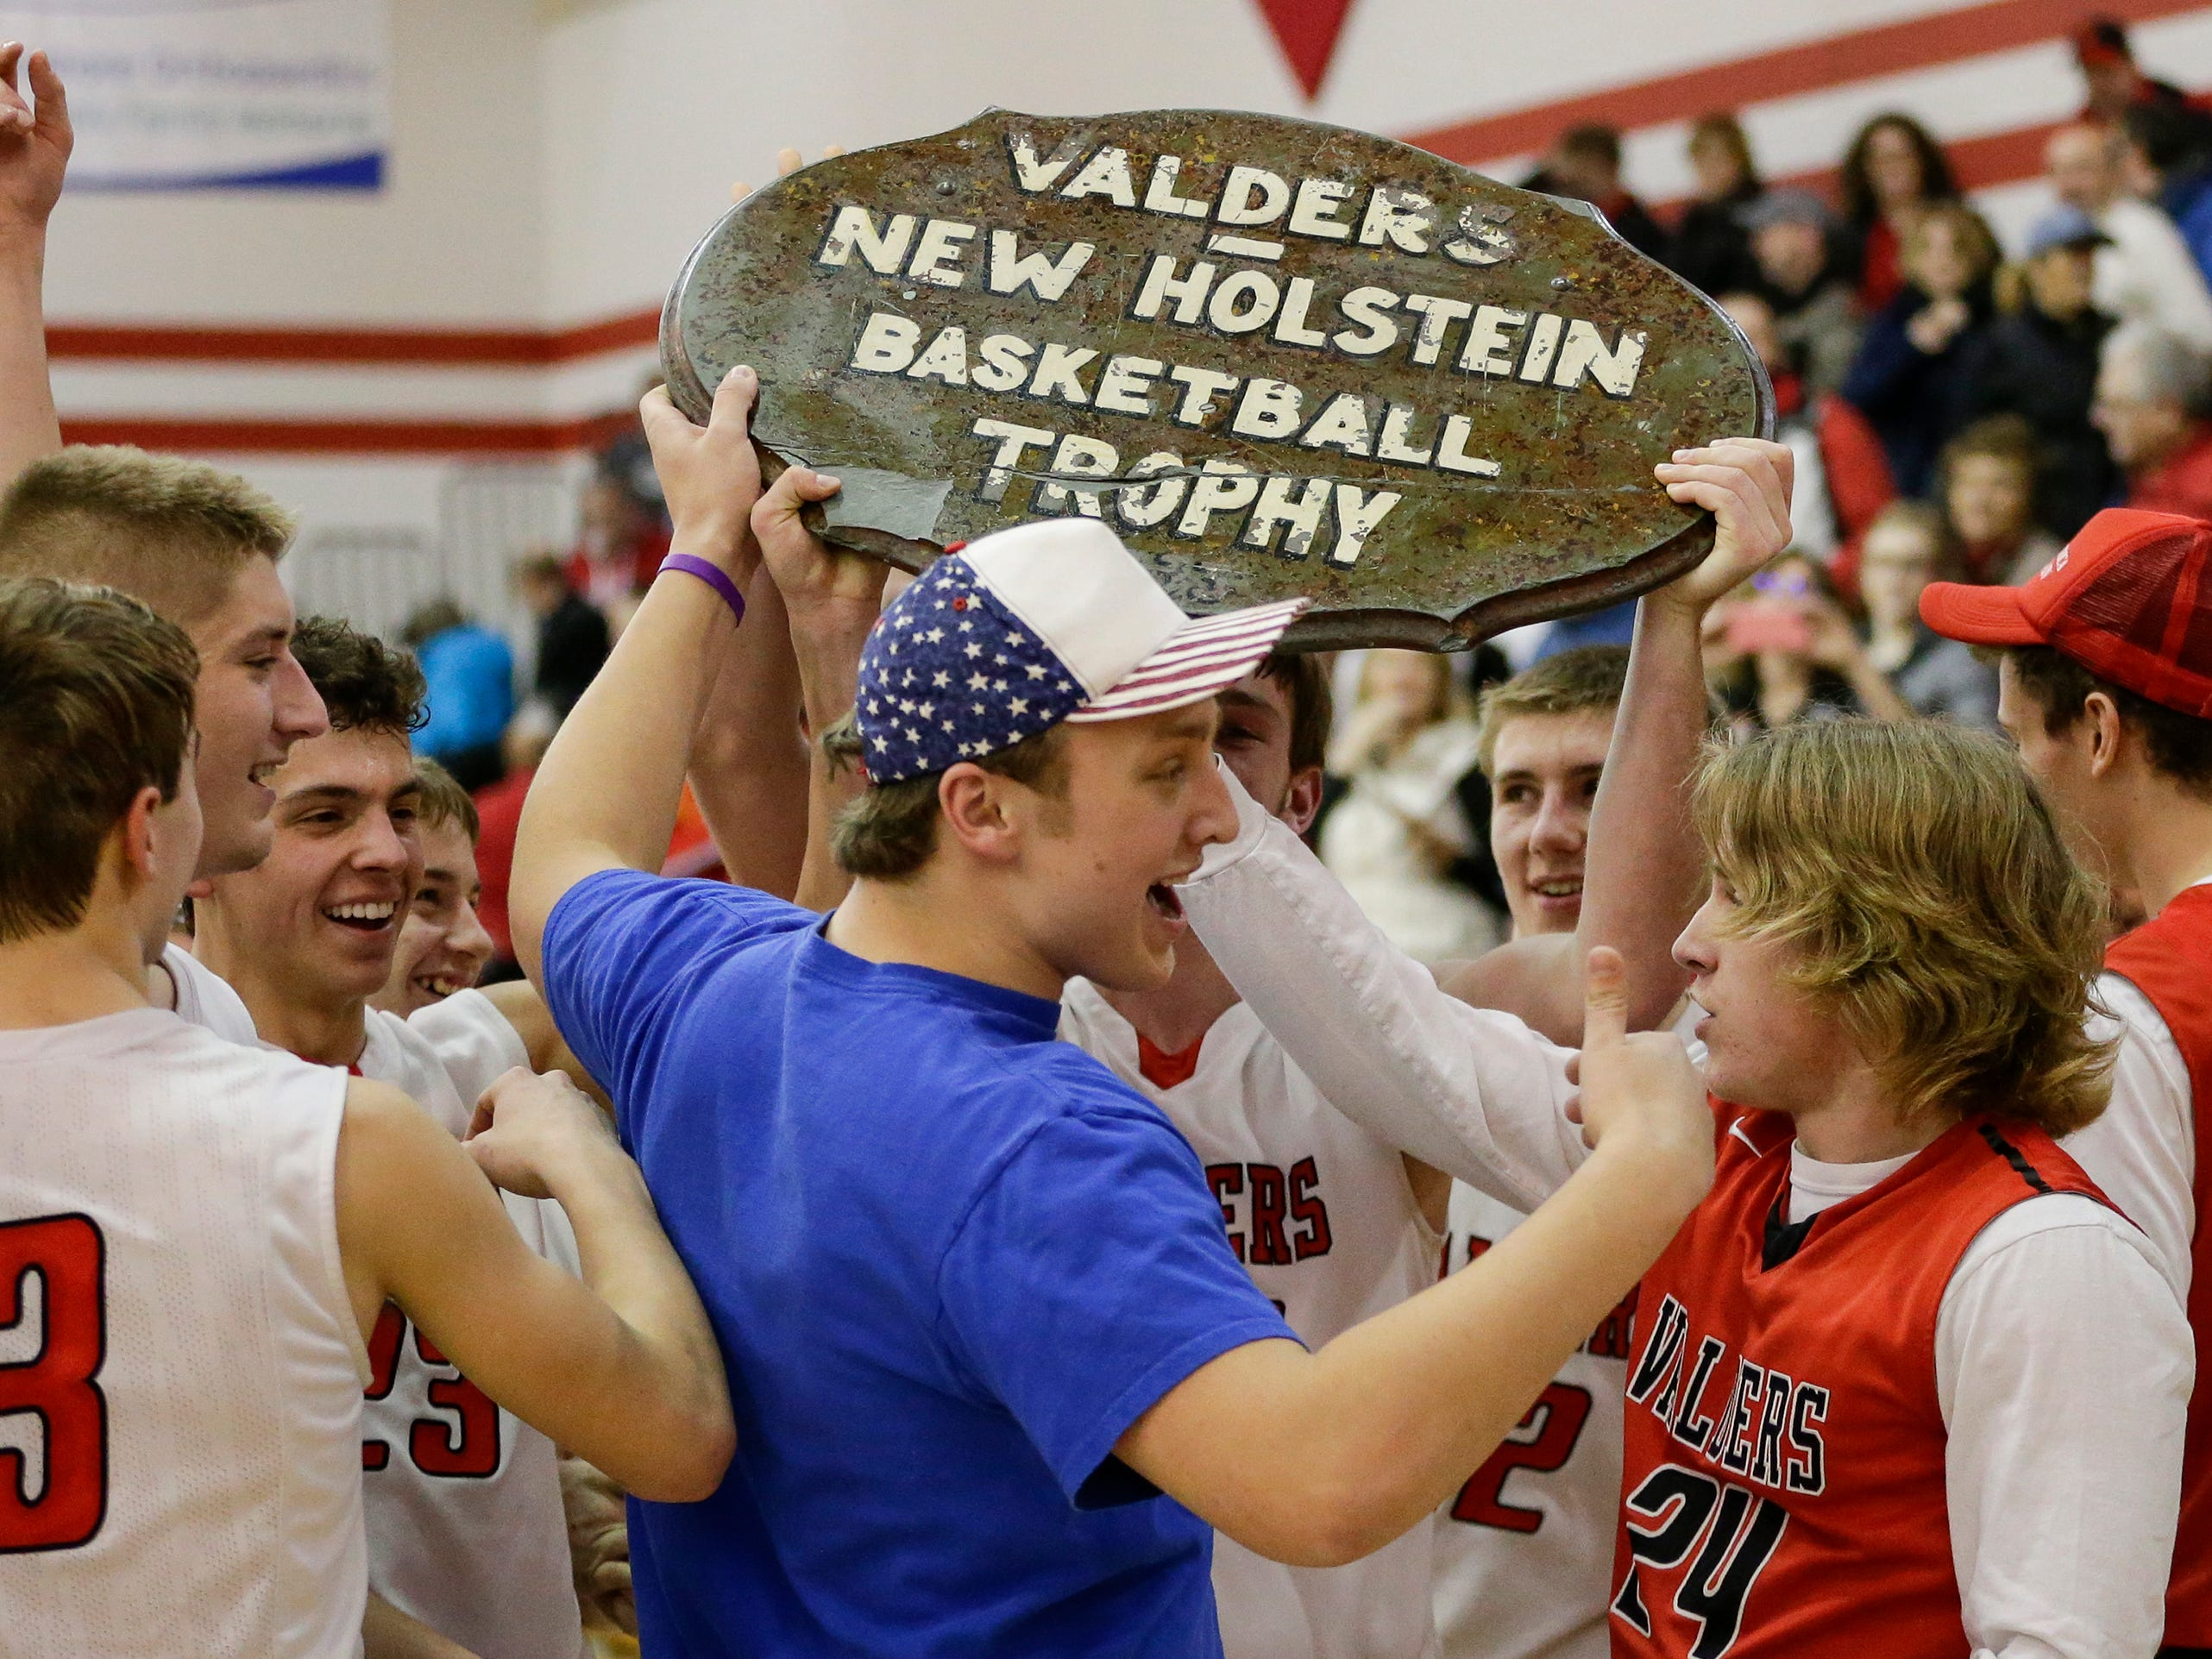 Valders' students gather around the coveted Table Top trophy after the Vikings defeated New Holstein in an EWC matchup at Valders High School Tuesday, January 15, 2019, in Valders, Wis. Joshua Clark/USA TODAY NETWORK-Wisconsin